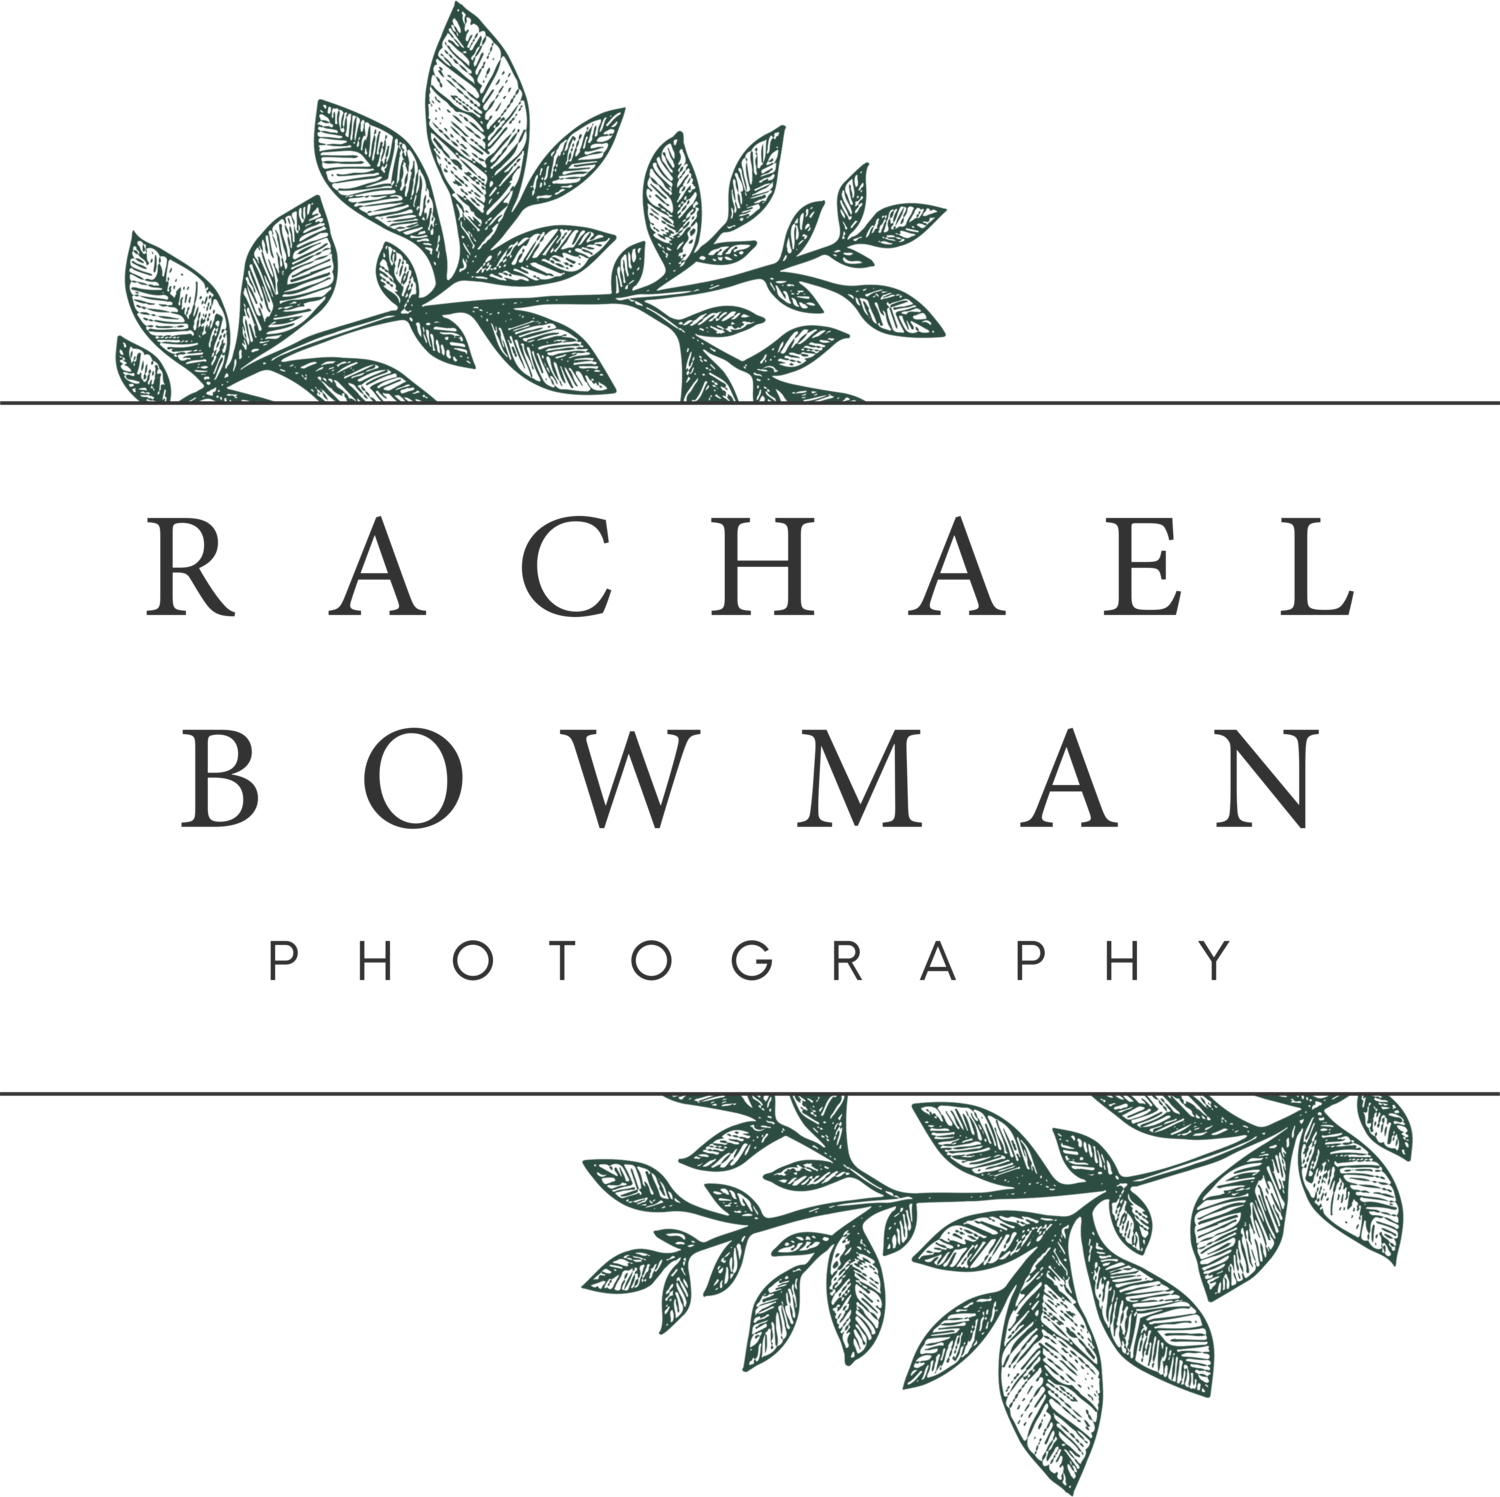 Rachael Bowman Photography - Raleigh North Carolina Wedding Photographer